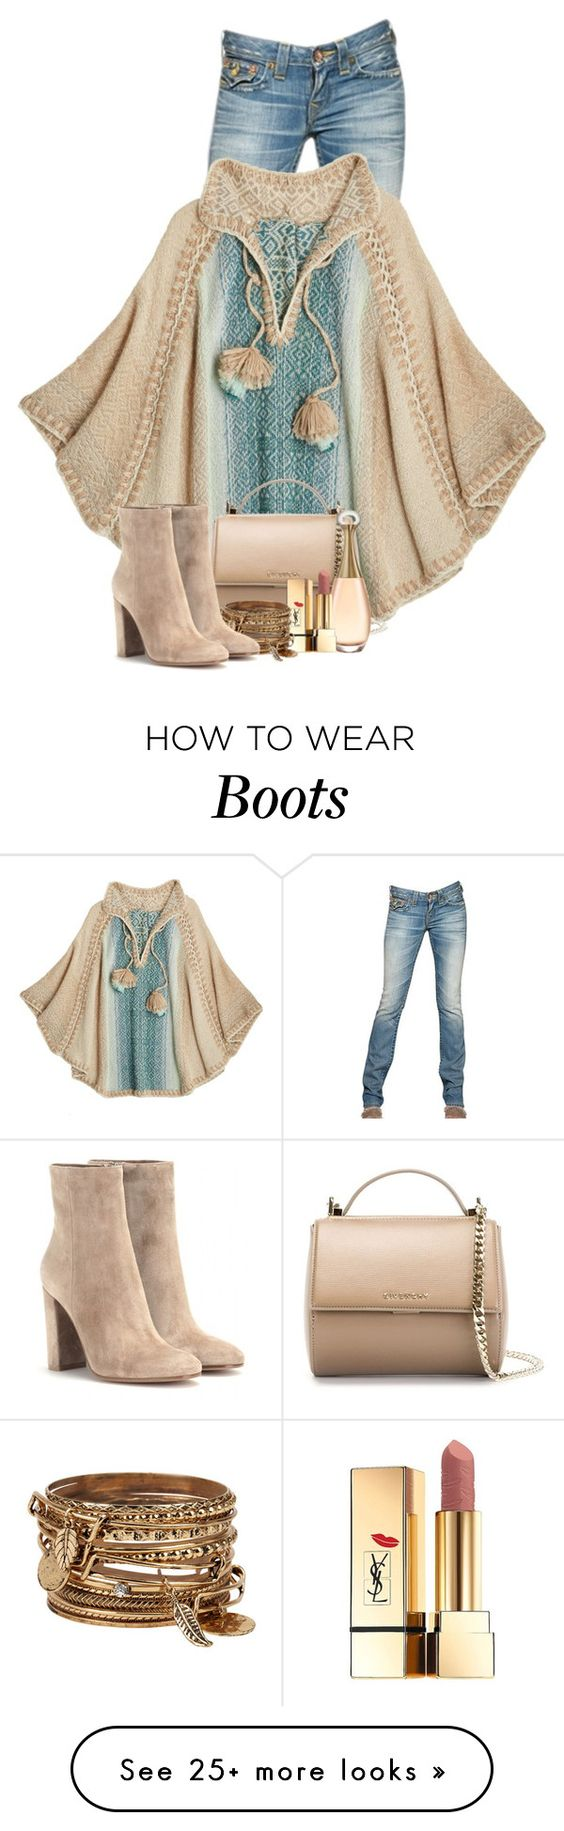 """""""Calypso"""" by flowerchild805 on Polyvore featuring True Religion, Calypso St. Barth, Givenchy, Yves Saint Laurent, ALDO and Gianvito Rossi:"""